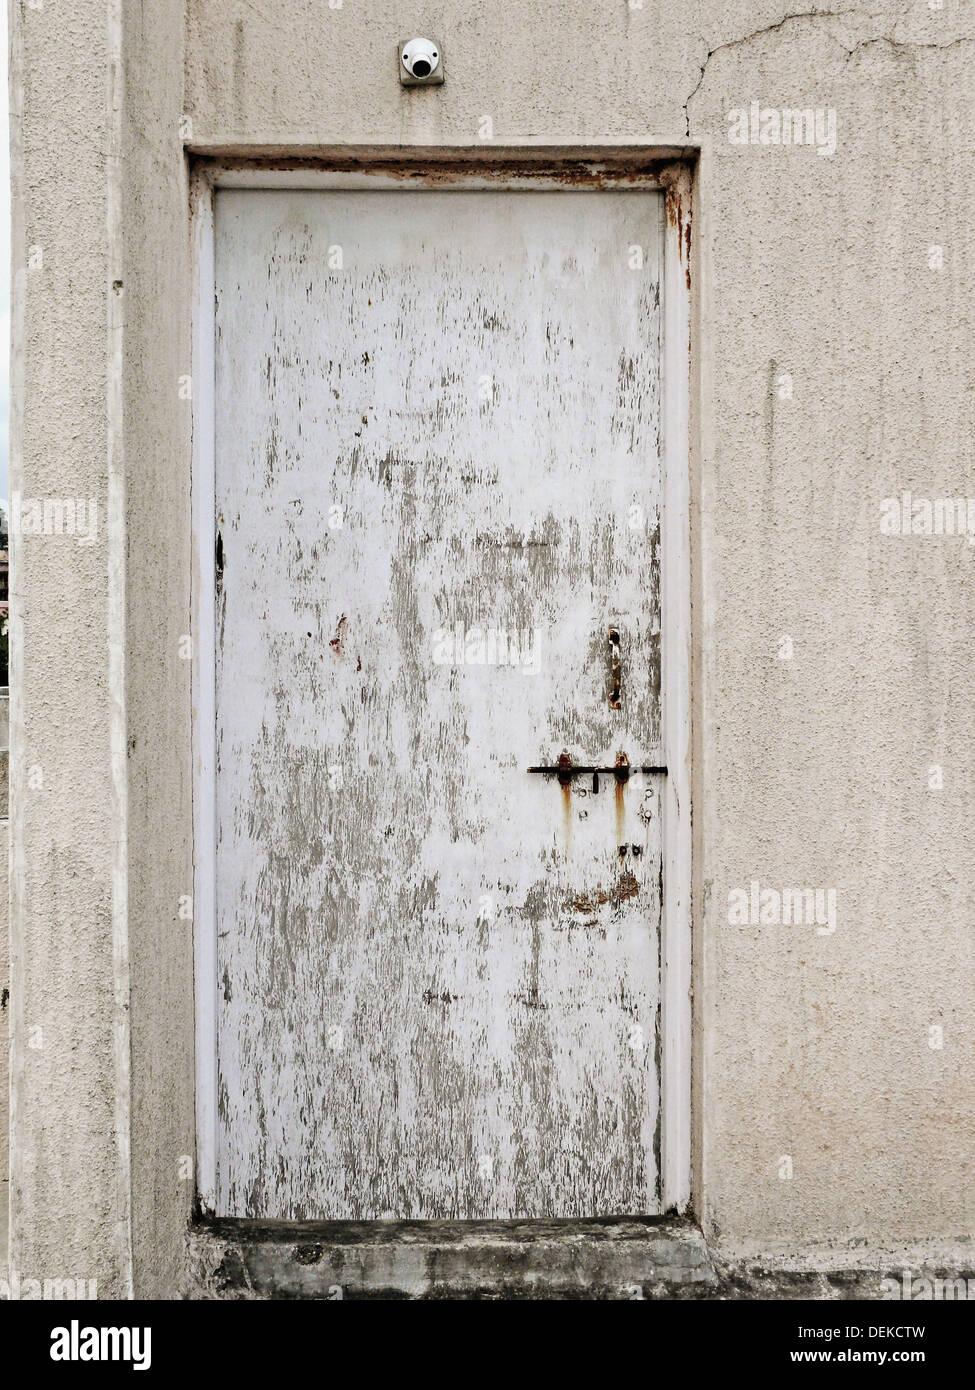 A rotten, decomposed flush door because of rainwater is on a terrace of a residential building. Pune, Maharashtra, India. - Stock Image